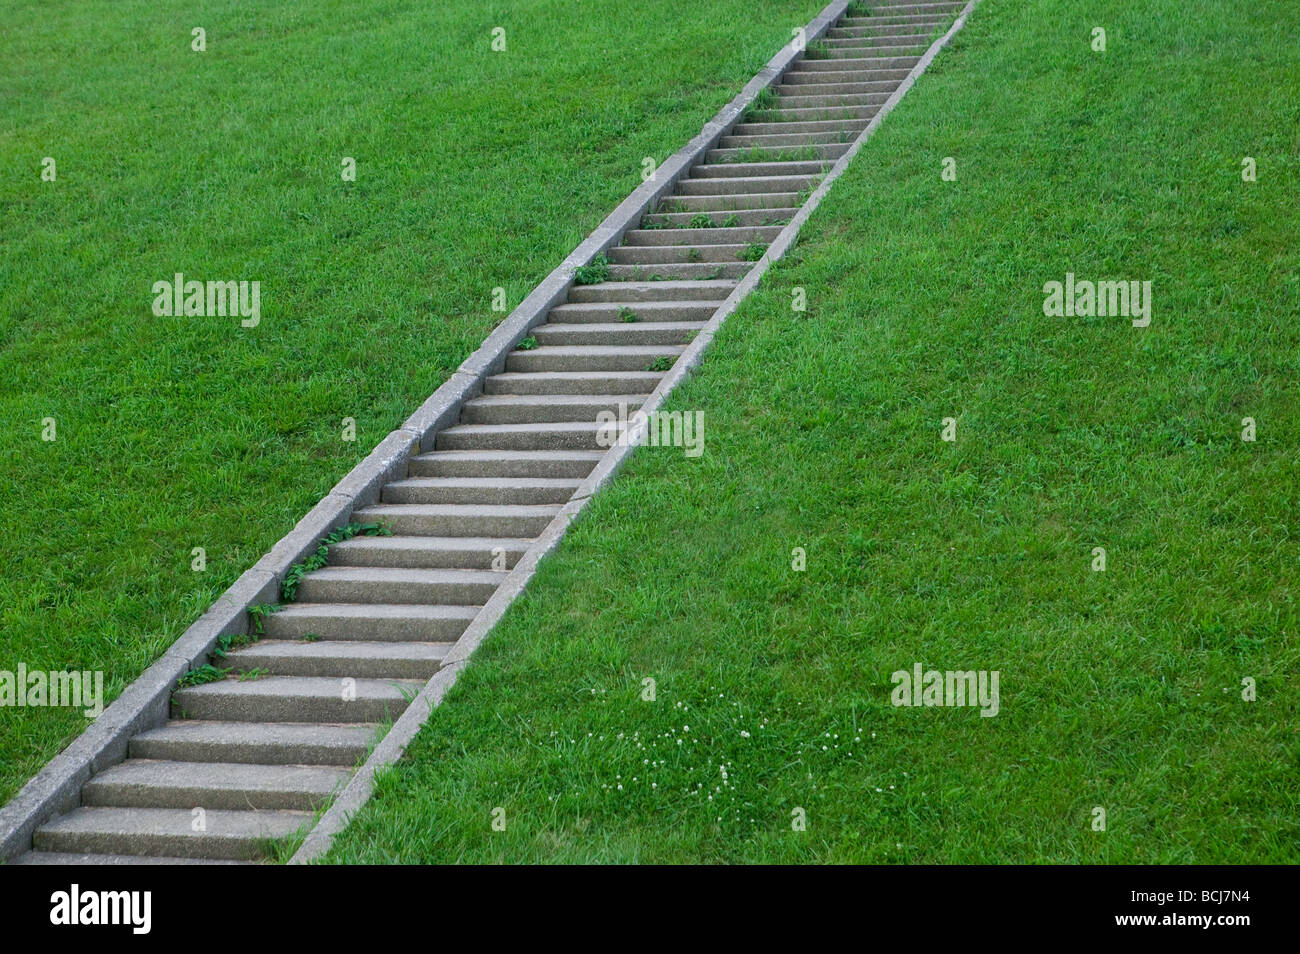 Diagonal pattern of concrete steps on grass covered hillside - Stock Image